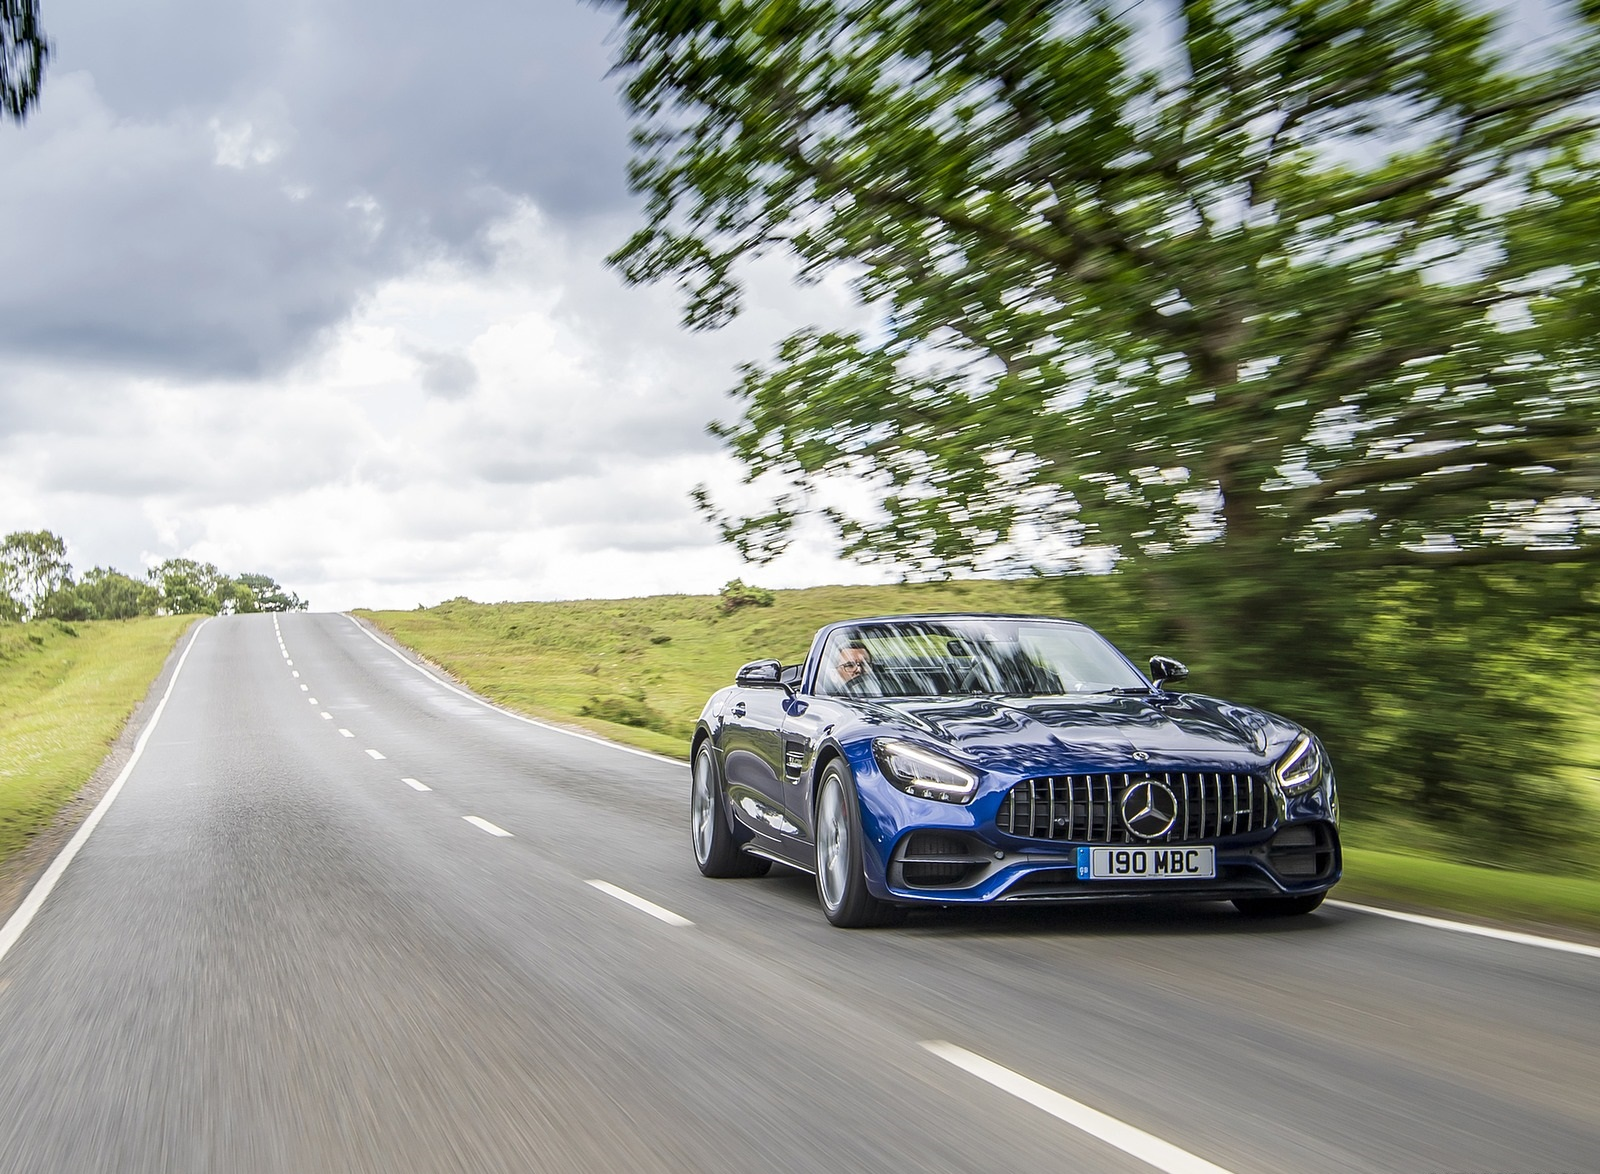 2020 Mercedes-AMG GT S Roadster (UK-Spec) Front Three-Quarter Wallpapers (7)